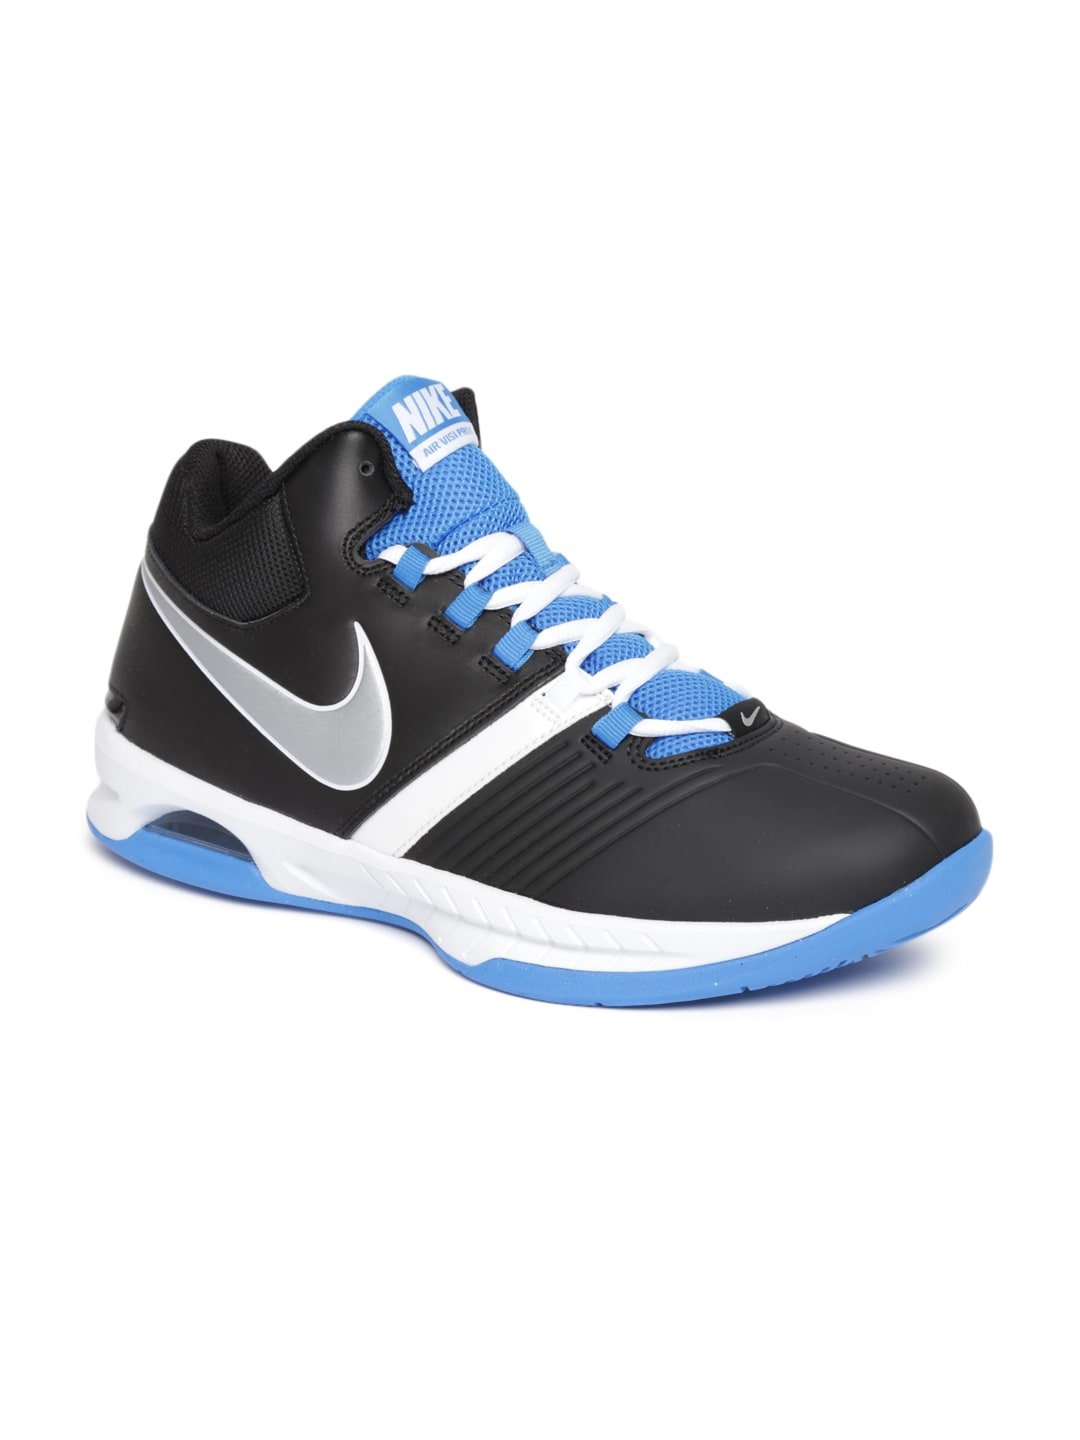 nike black air visi pro basketball shoes